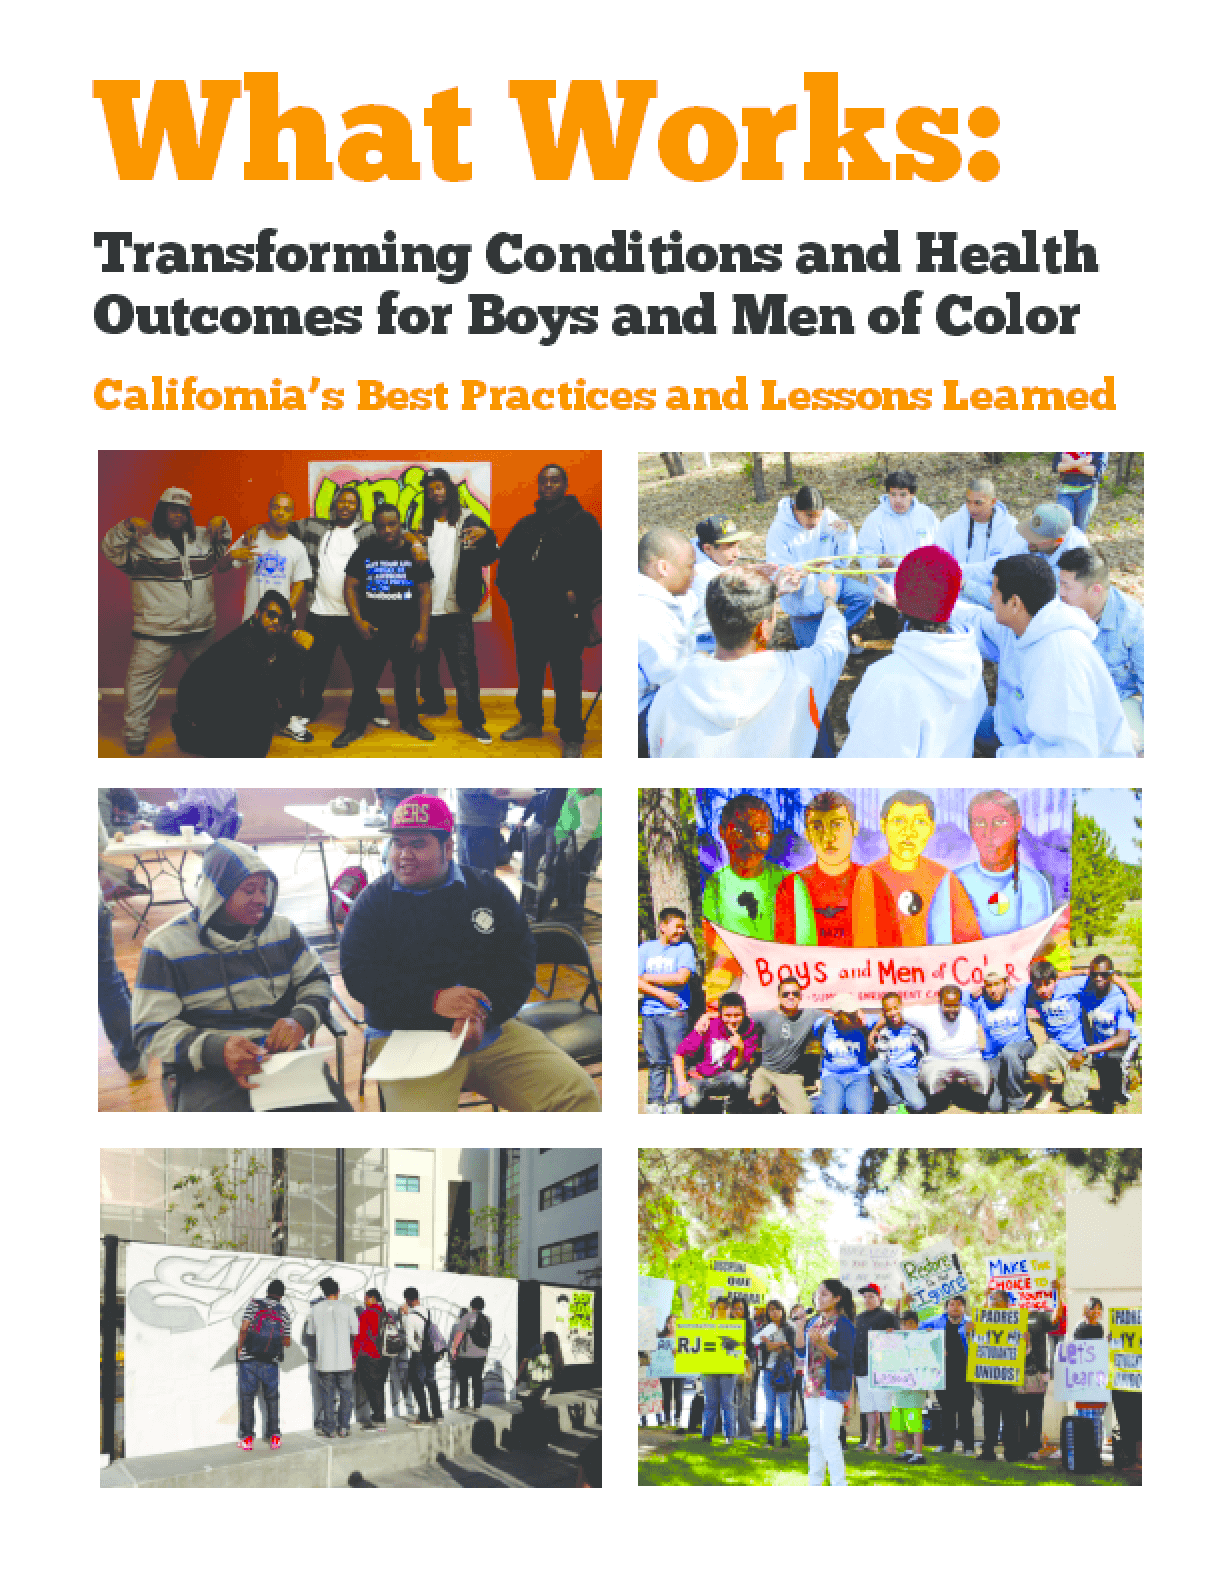 What Works: Transforming Conditions and Health Outcomes for Boys and Men of Color